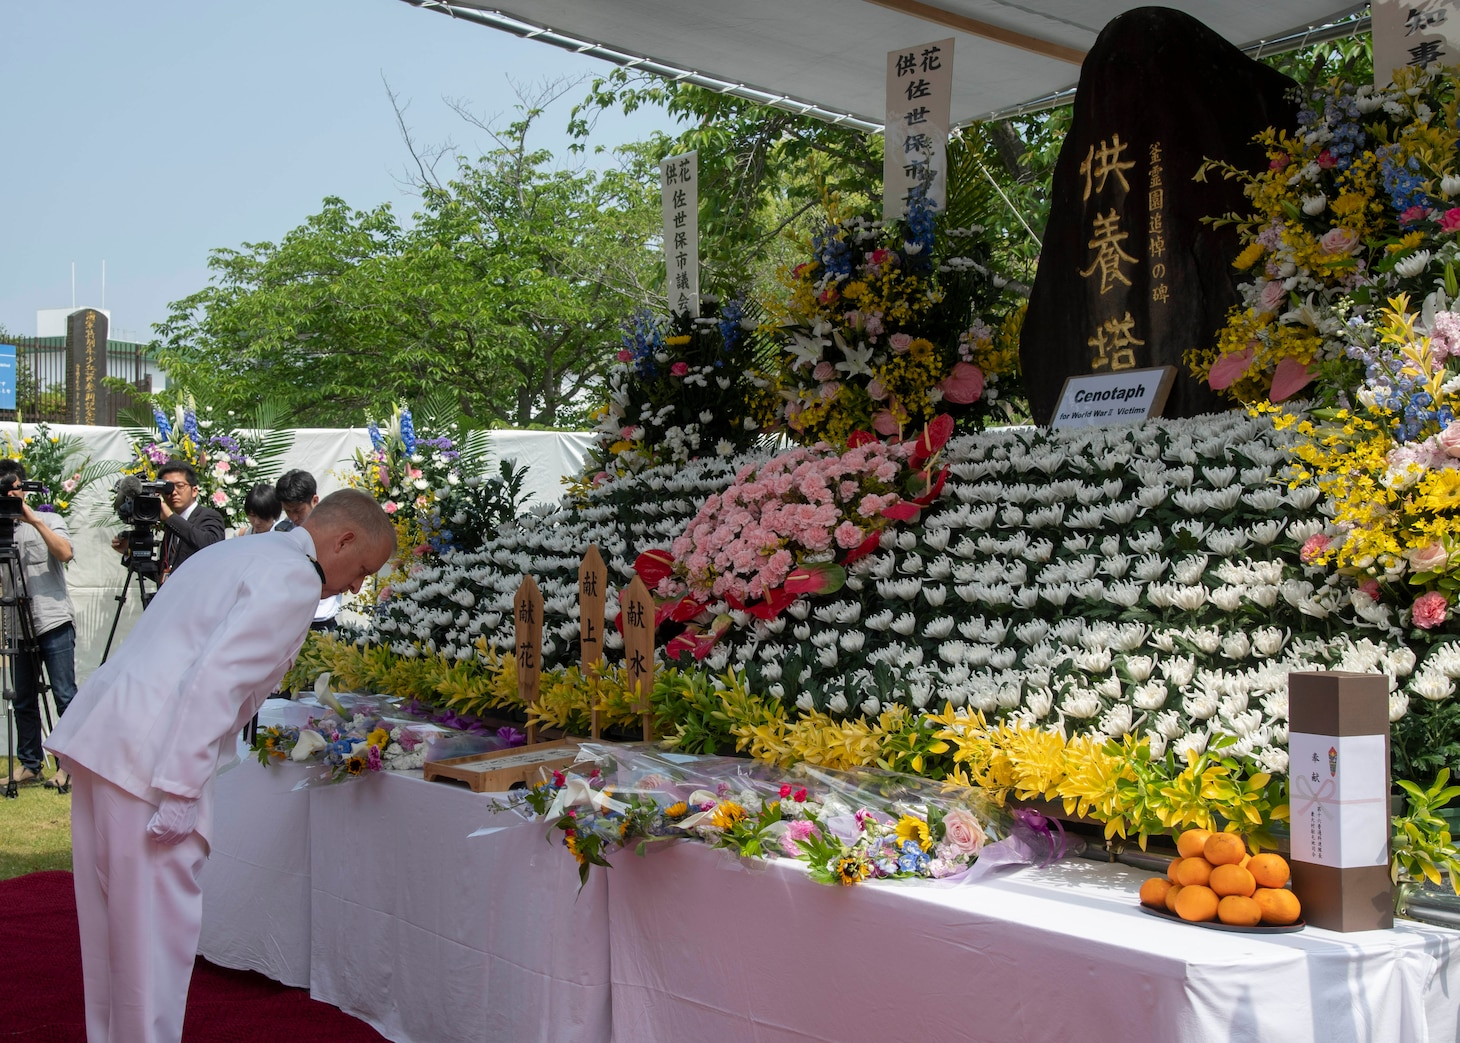 Memorial Service Held at Kama Cemetery for Japanese War Dead